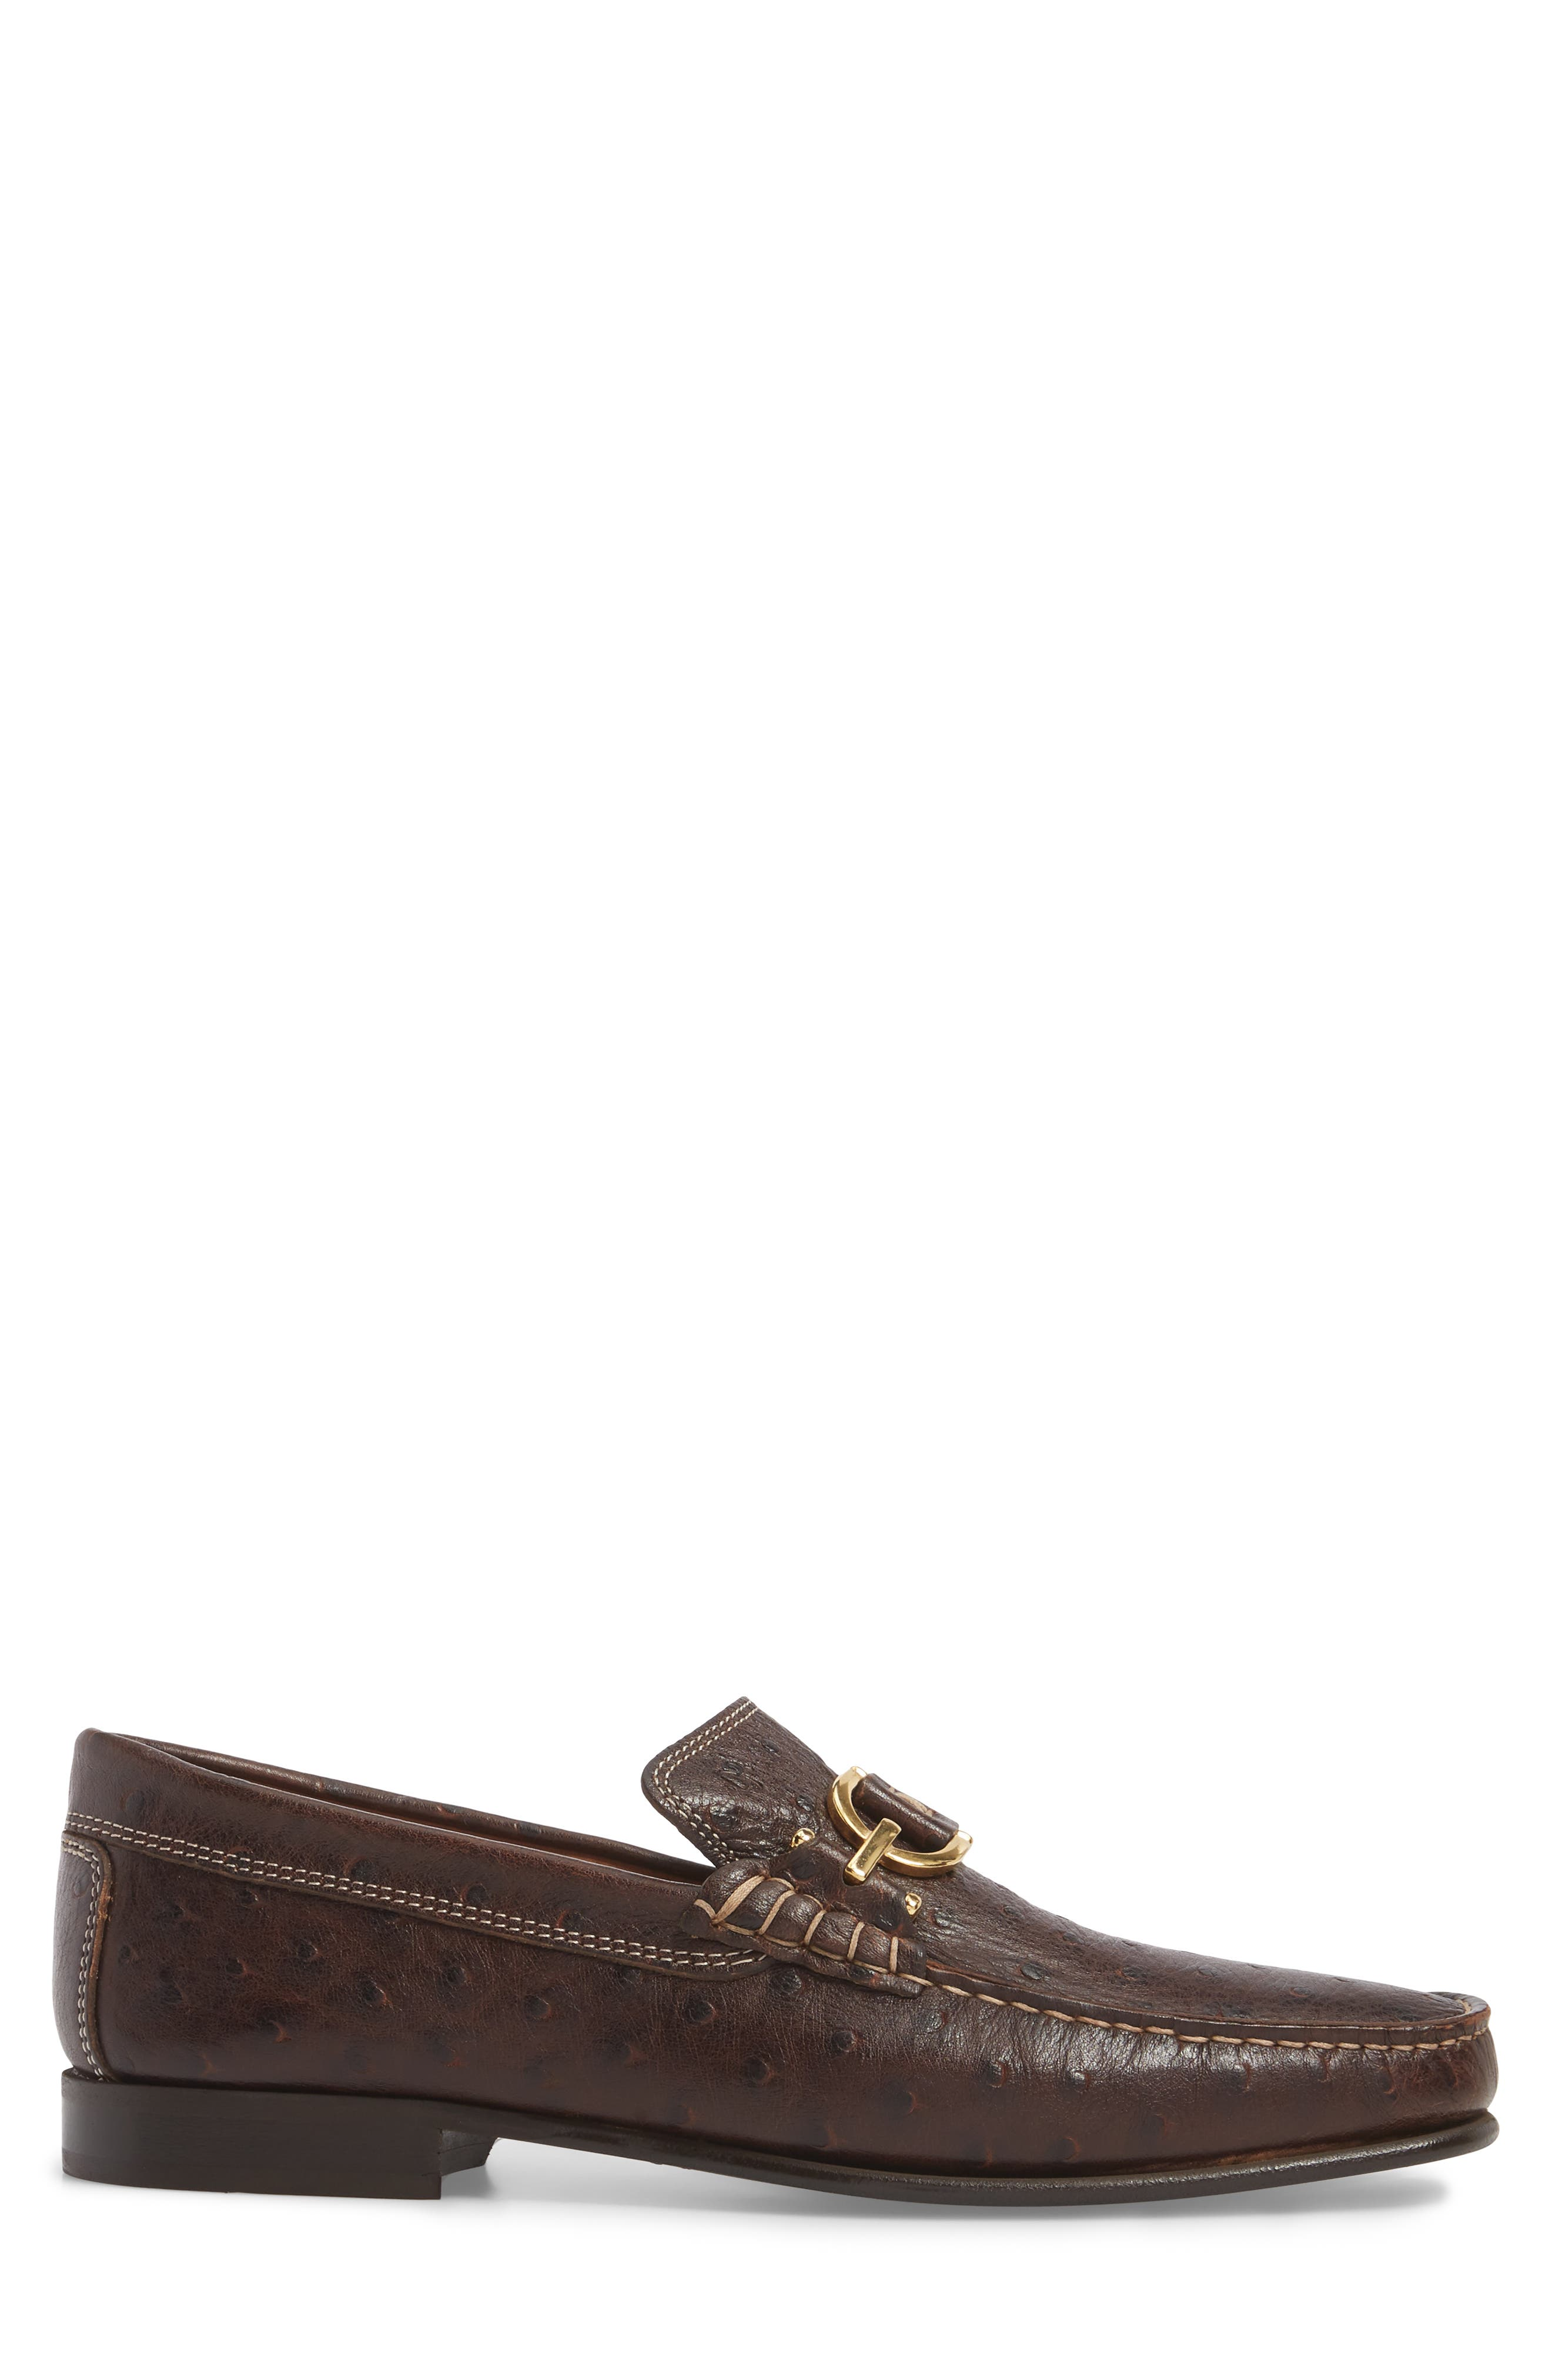 Dacio Square-Toe Loafer,                             Alternate thumbnail 3, color,                             BROWN LEATHER